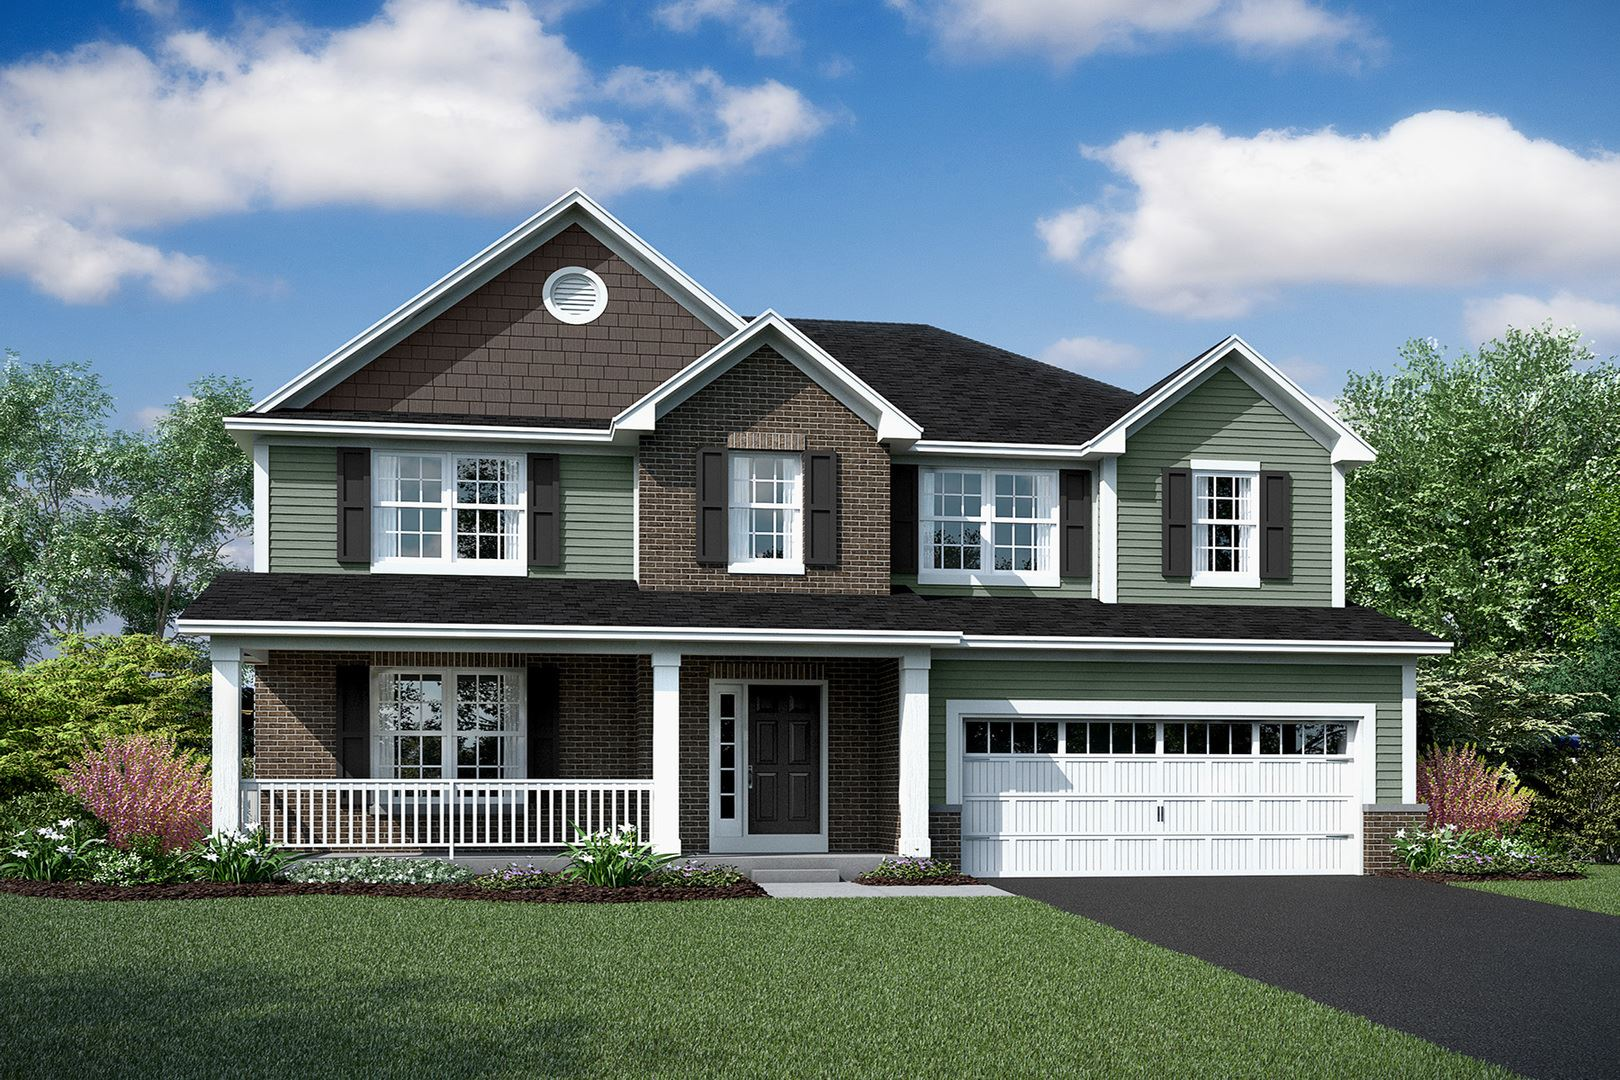 Photo of 21237 Coventry Lot # 91 Circle, Shorewood, IL 60404 (MLS # 10856302)